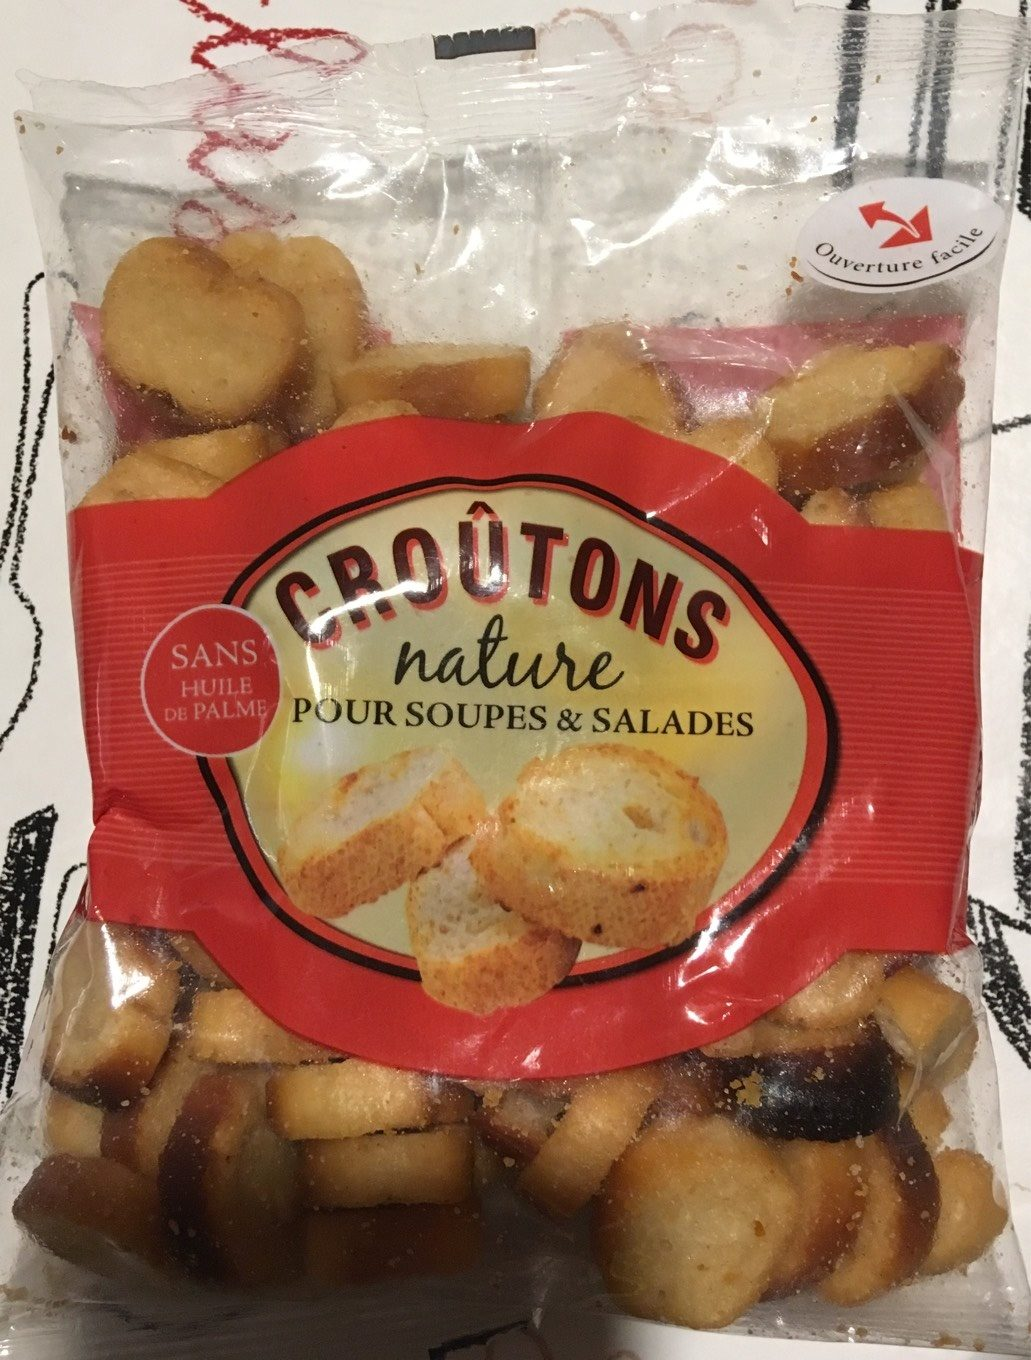 Croutons nature - Product